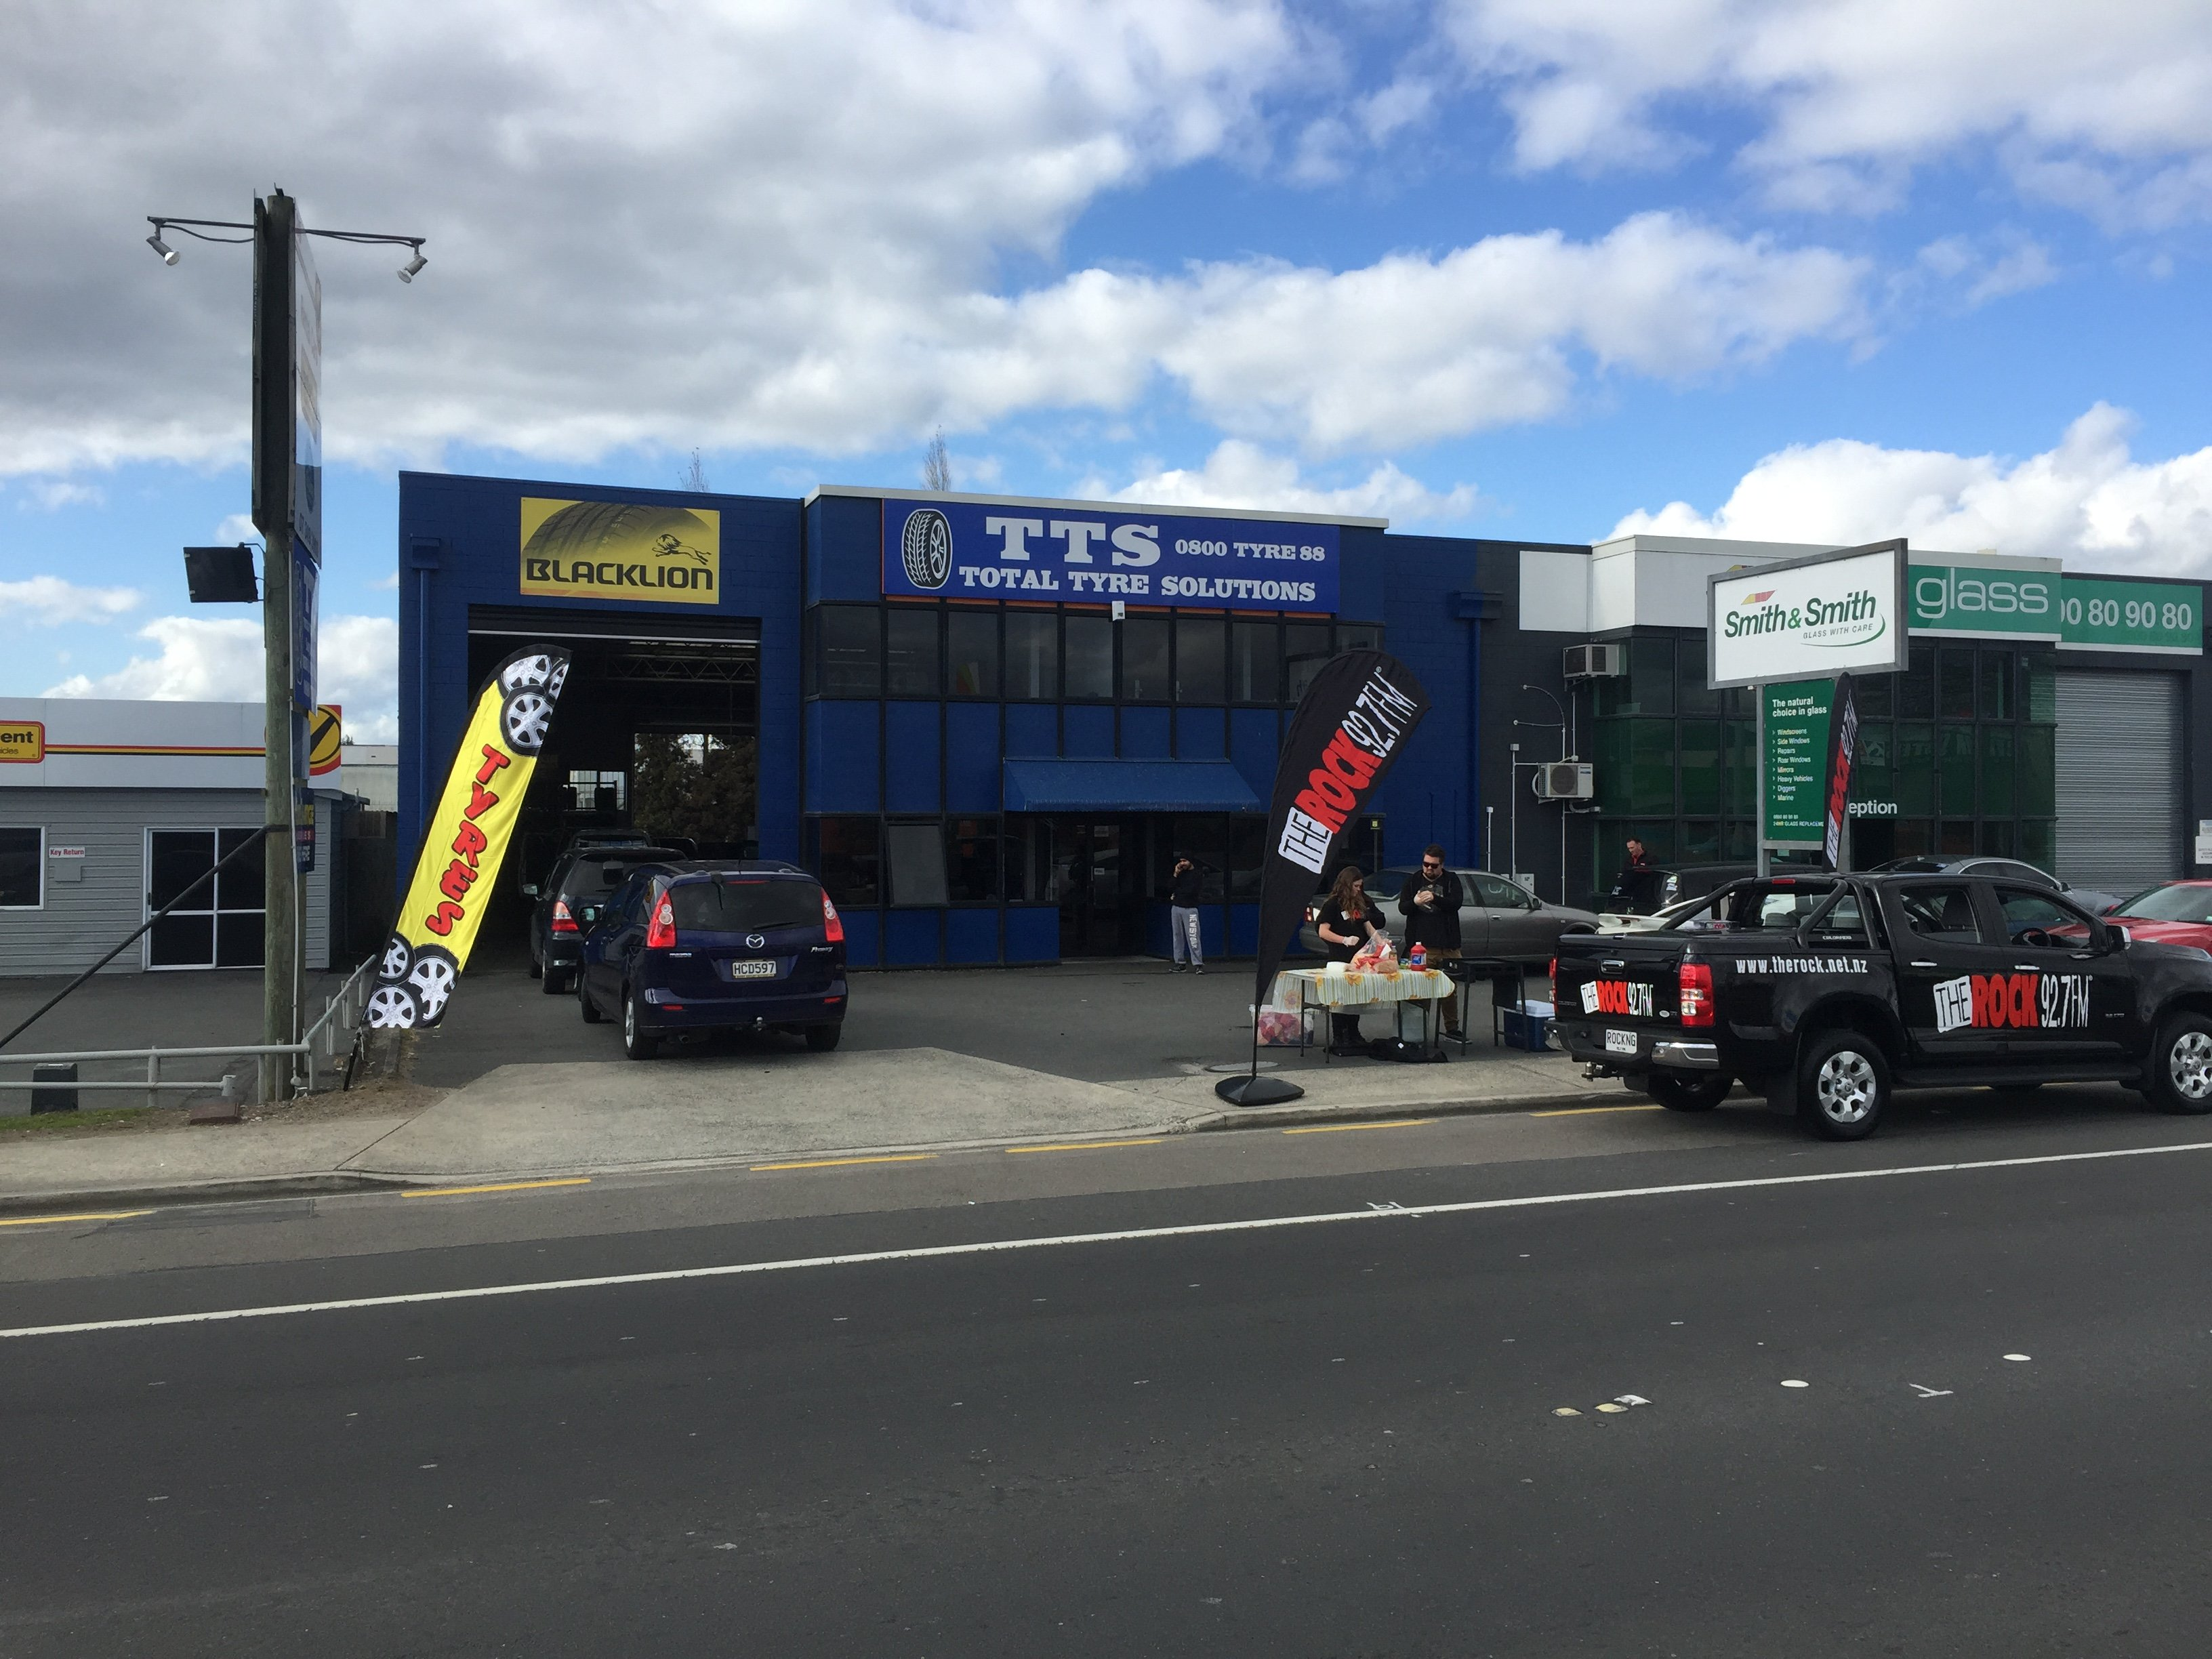 Tyres and wheels experts providing solutions for cars in Rotorua